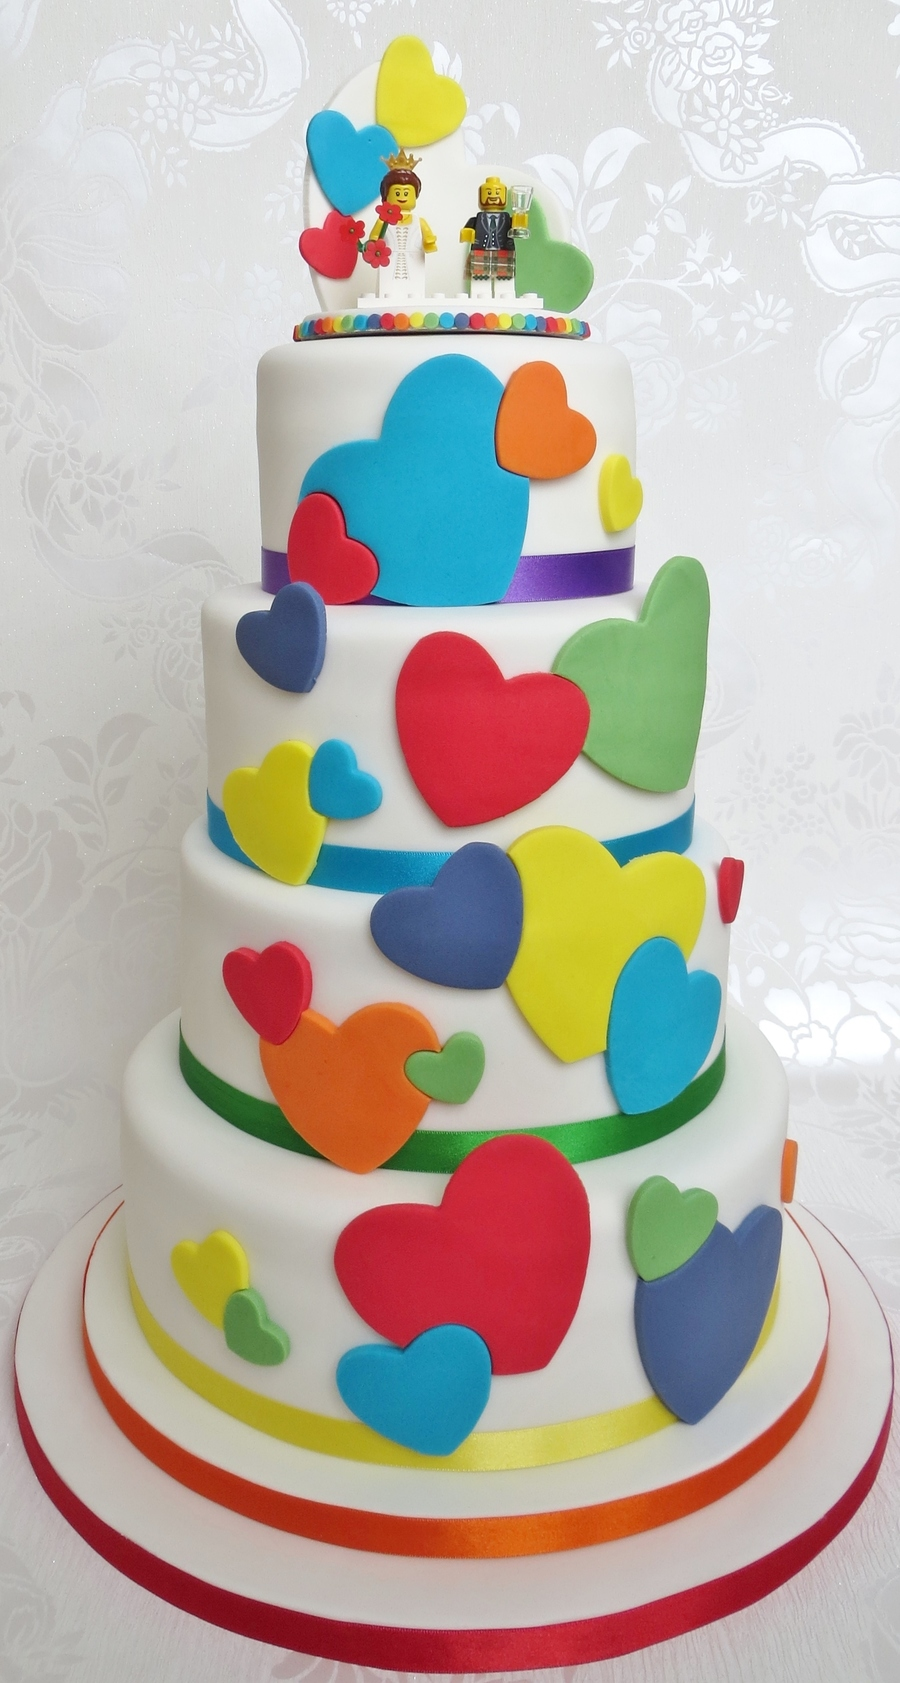 Rainbow Heart Wedding Cake With Lego Topper Cakecentral Com